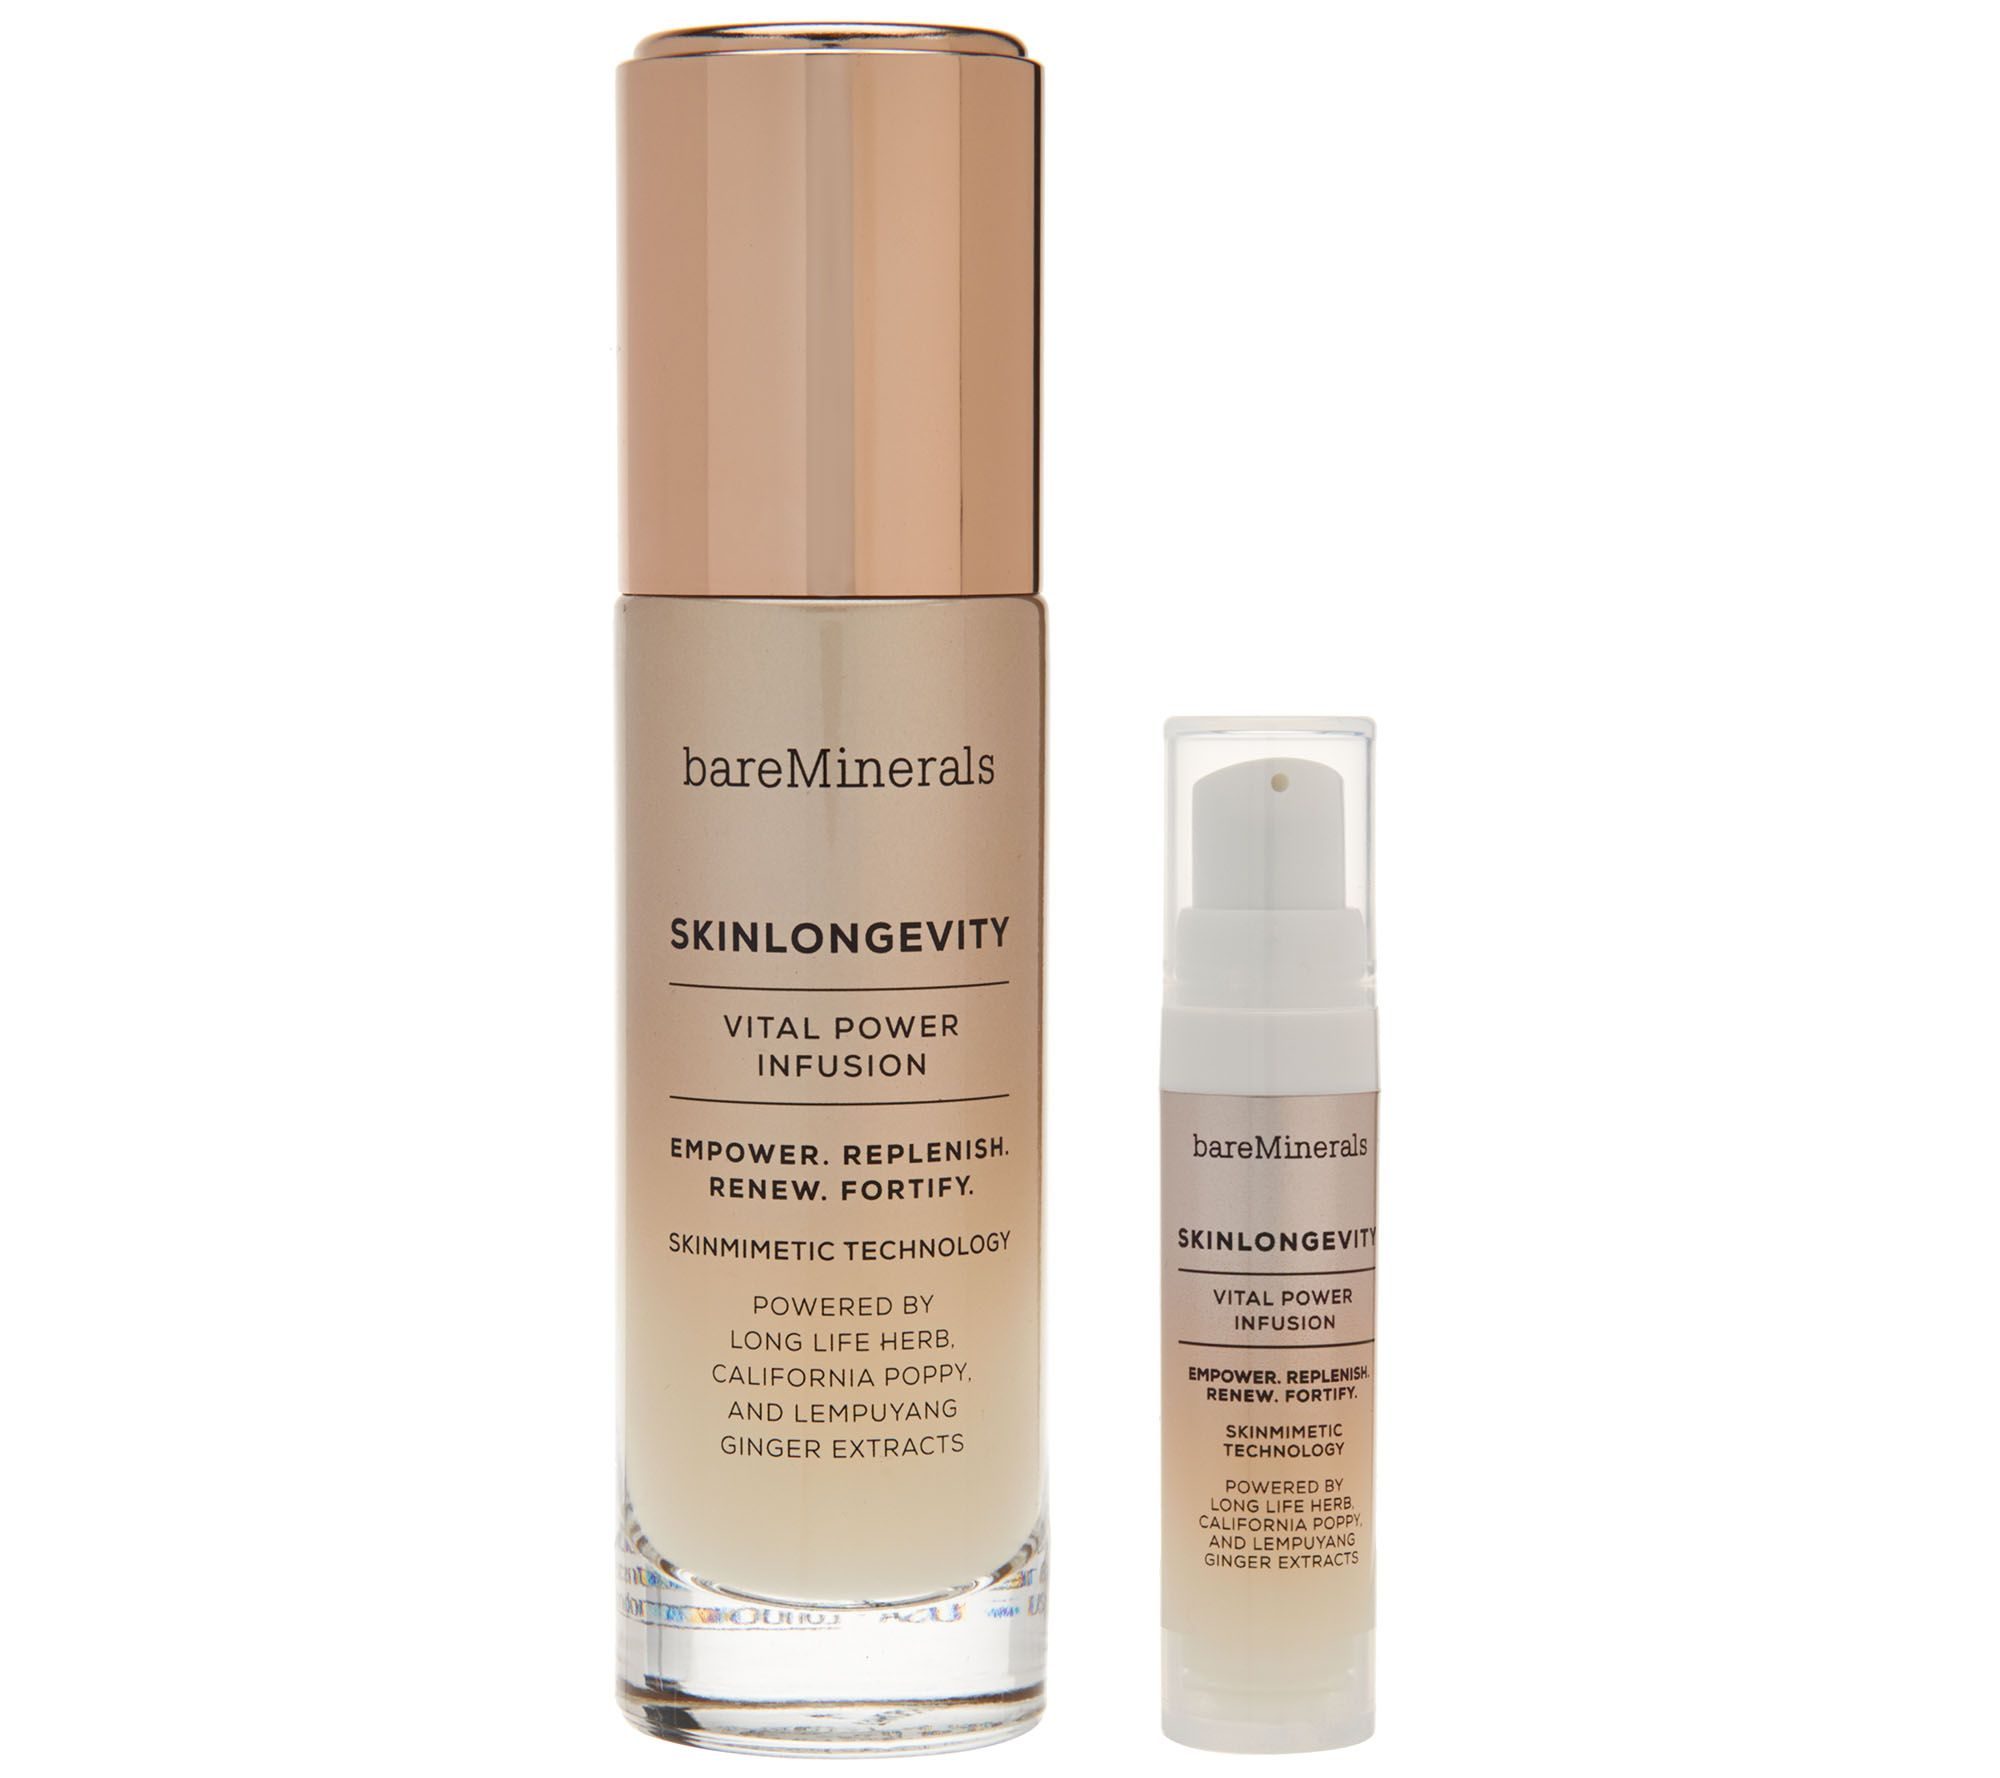 bareMinerals SkinLongevity Vital Power Infusion w/ Deluxe Sample - A273634